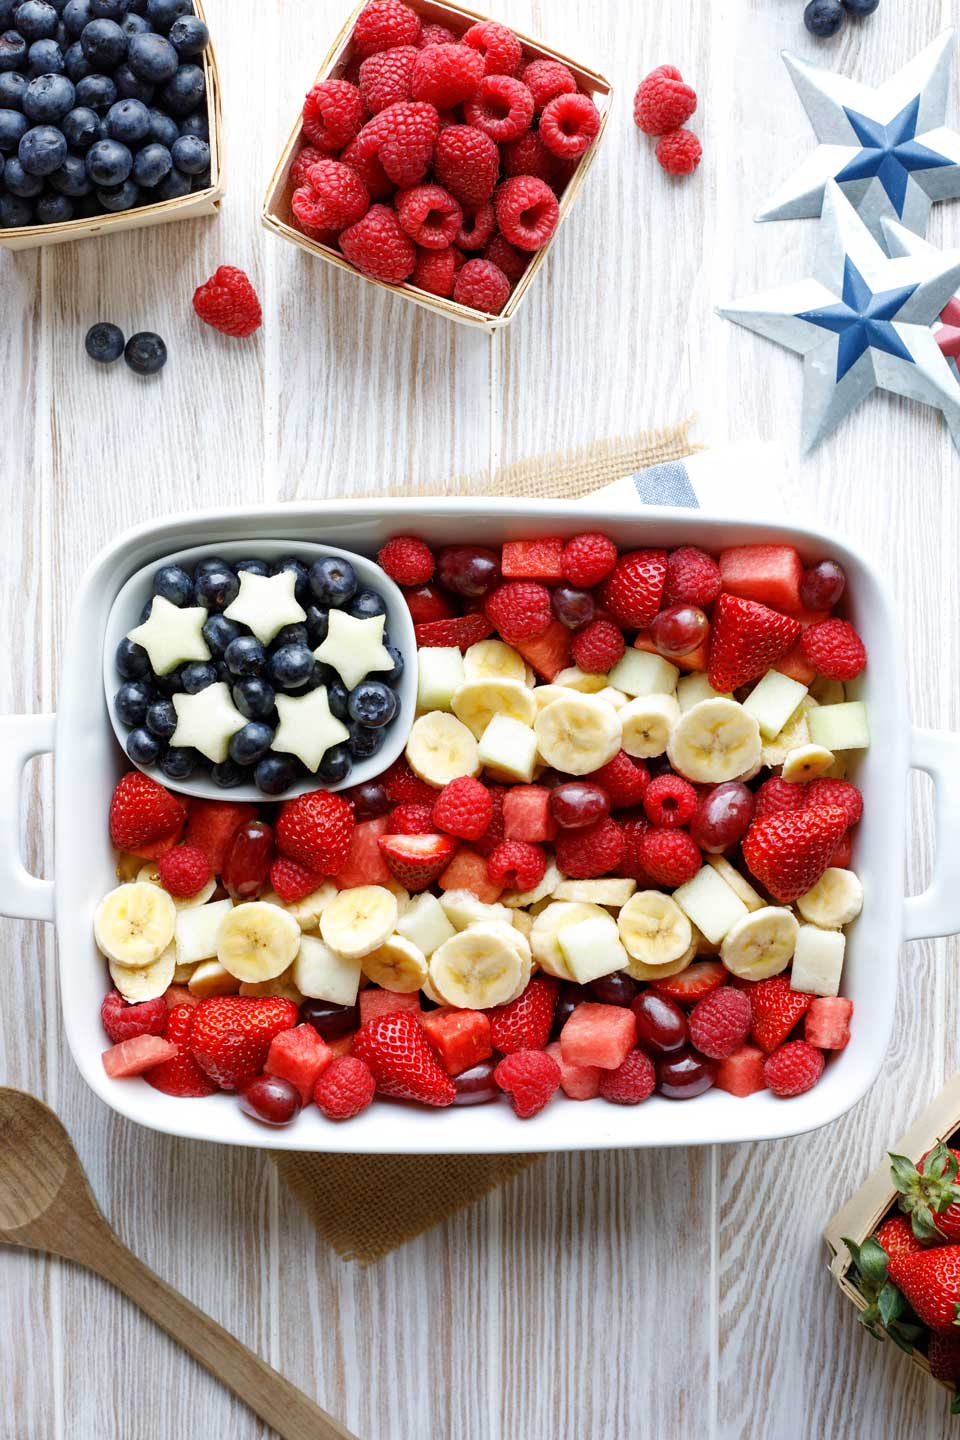 Flag fruit salad in a rectangular pan, with white melon stars on the field of blue